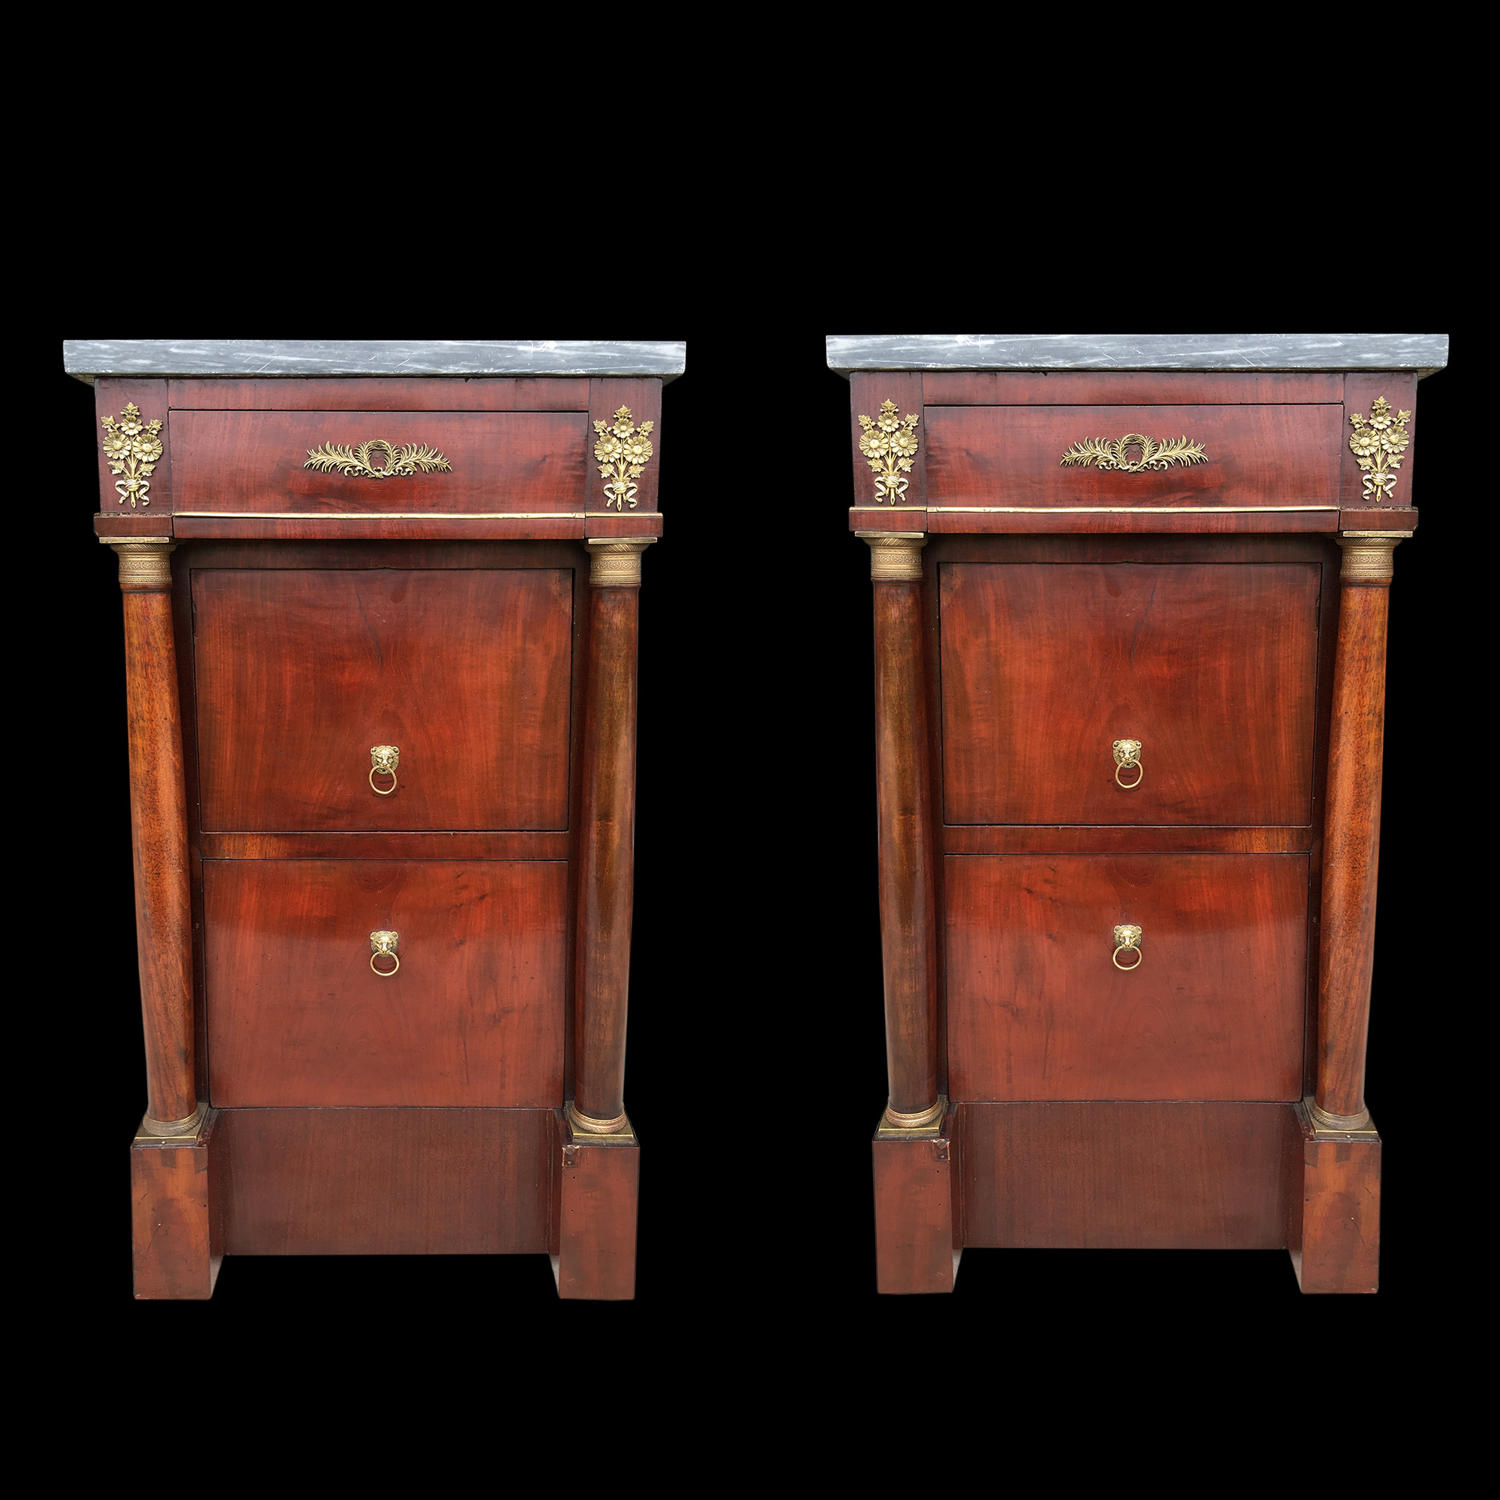 A PAIR OF ITALIAN EMPIRE PERIOD BEDSIDE CUPBOARDS